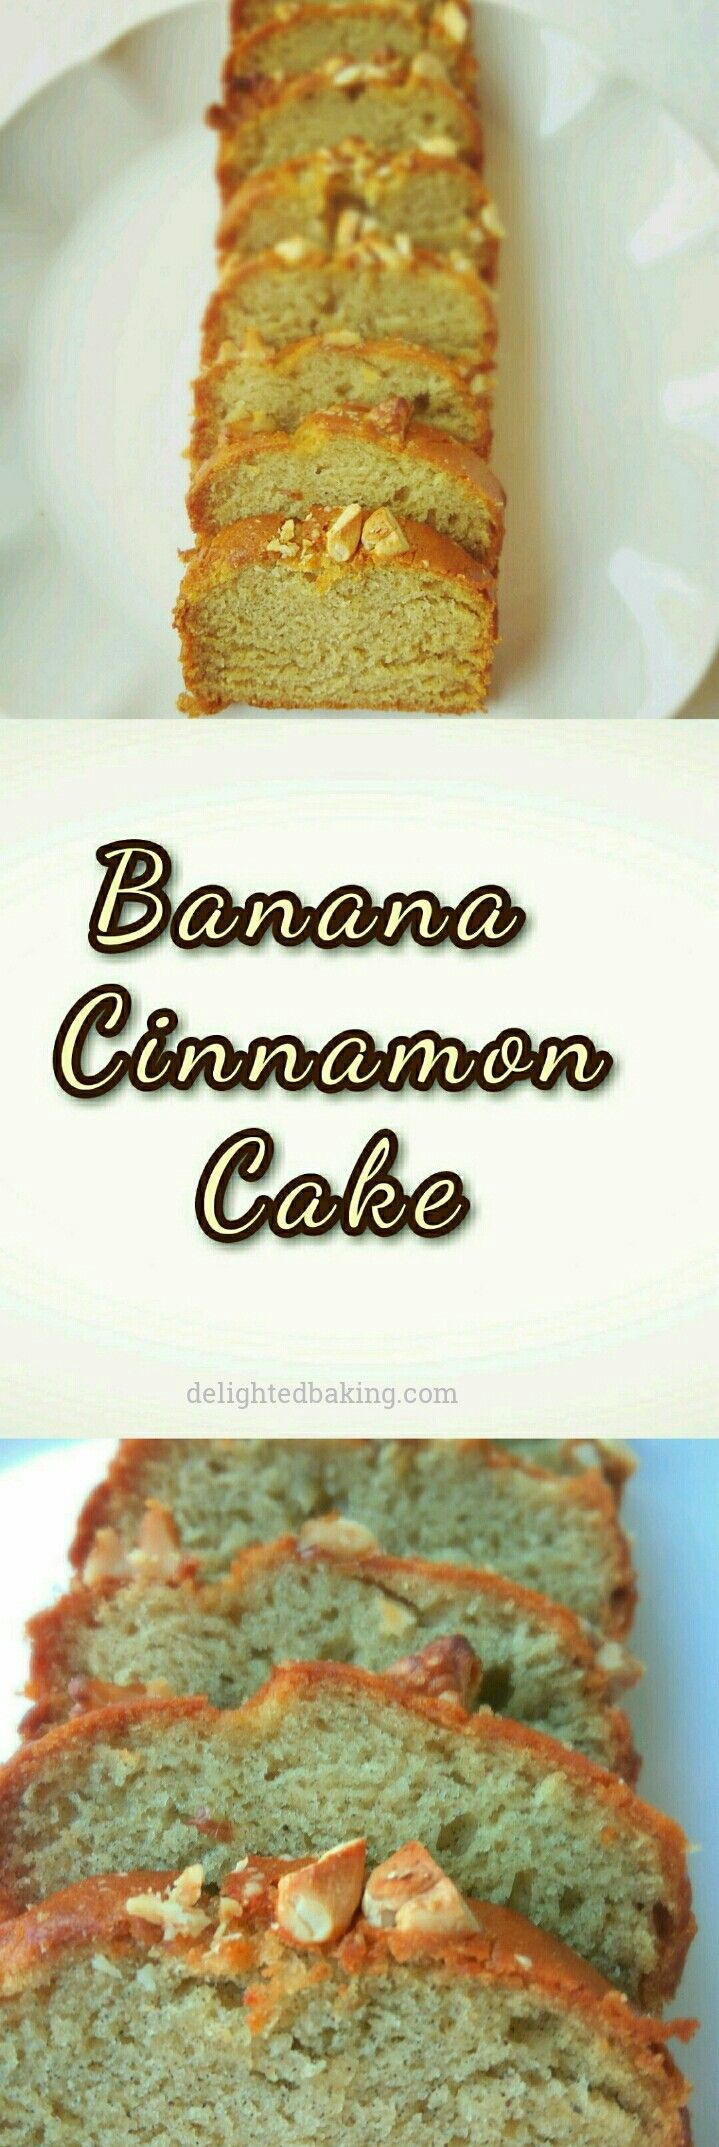 Banana Cinnamon Cake : A blend of tasty flavours. If you love Banana and cinnamon, then this is a must try cake recipe for you.